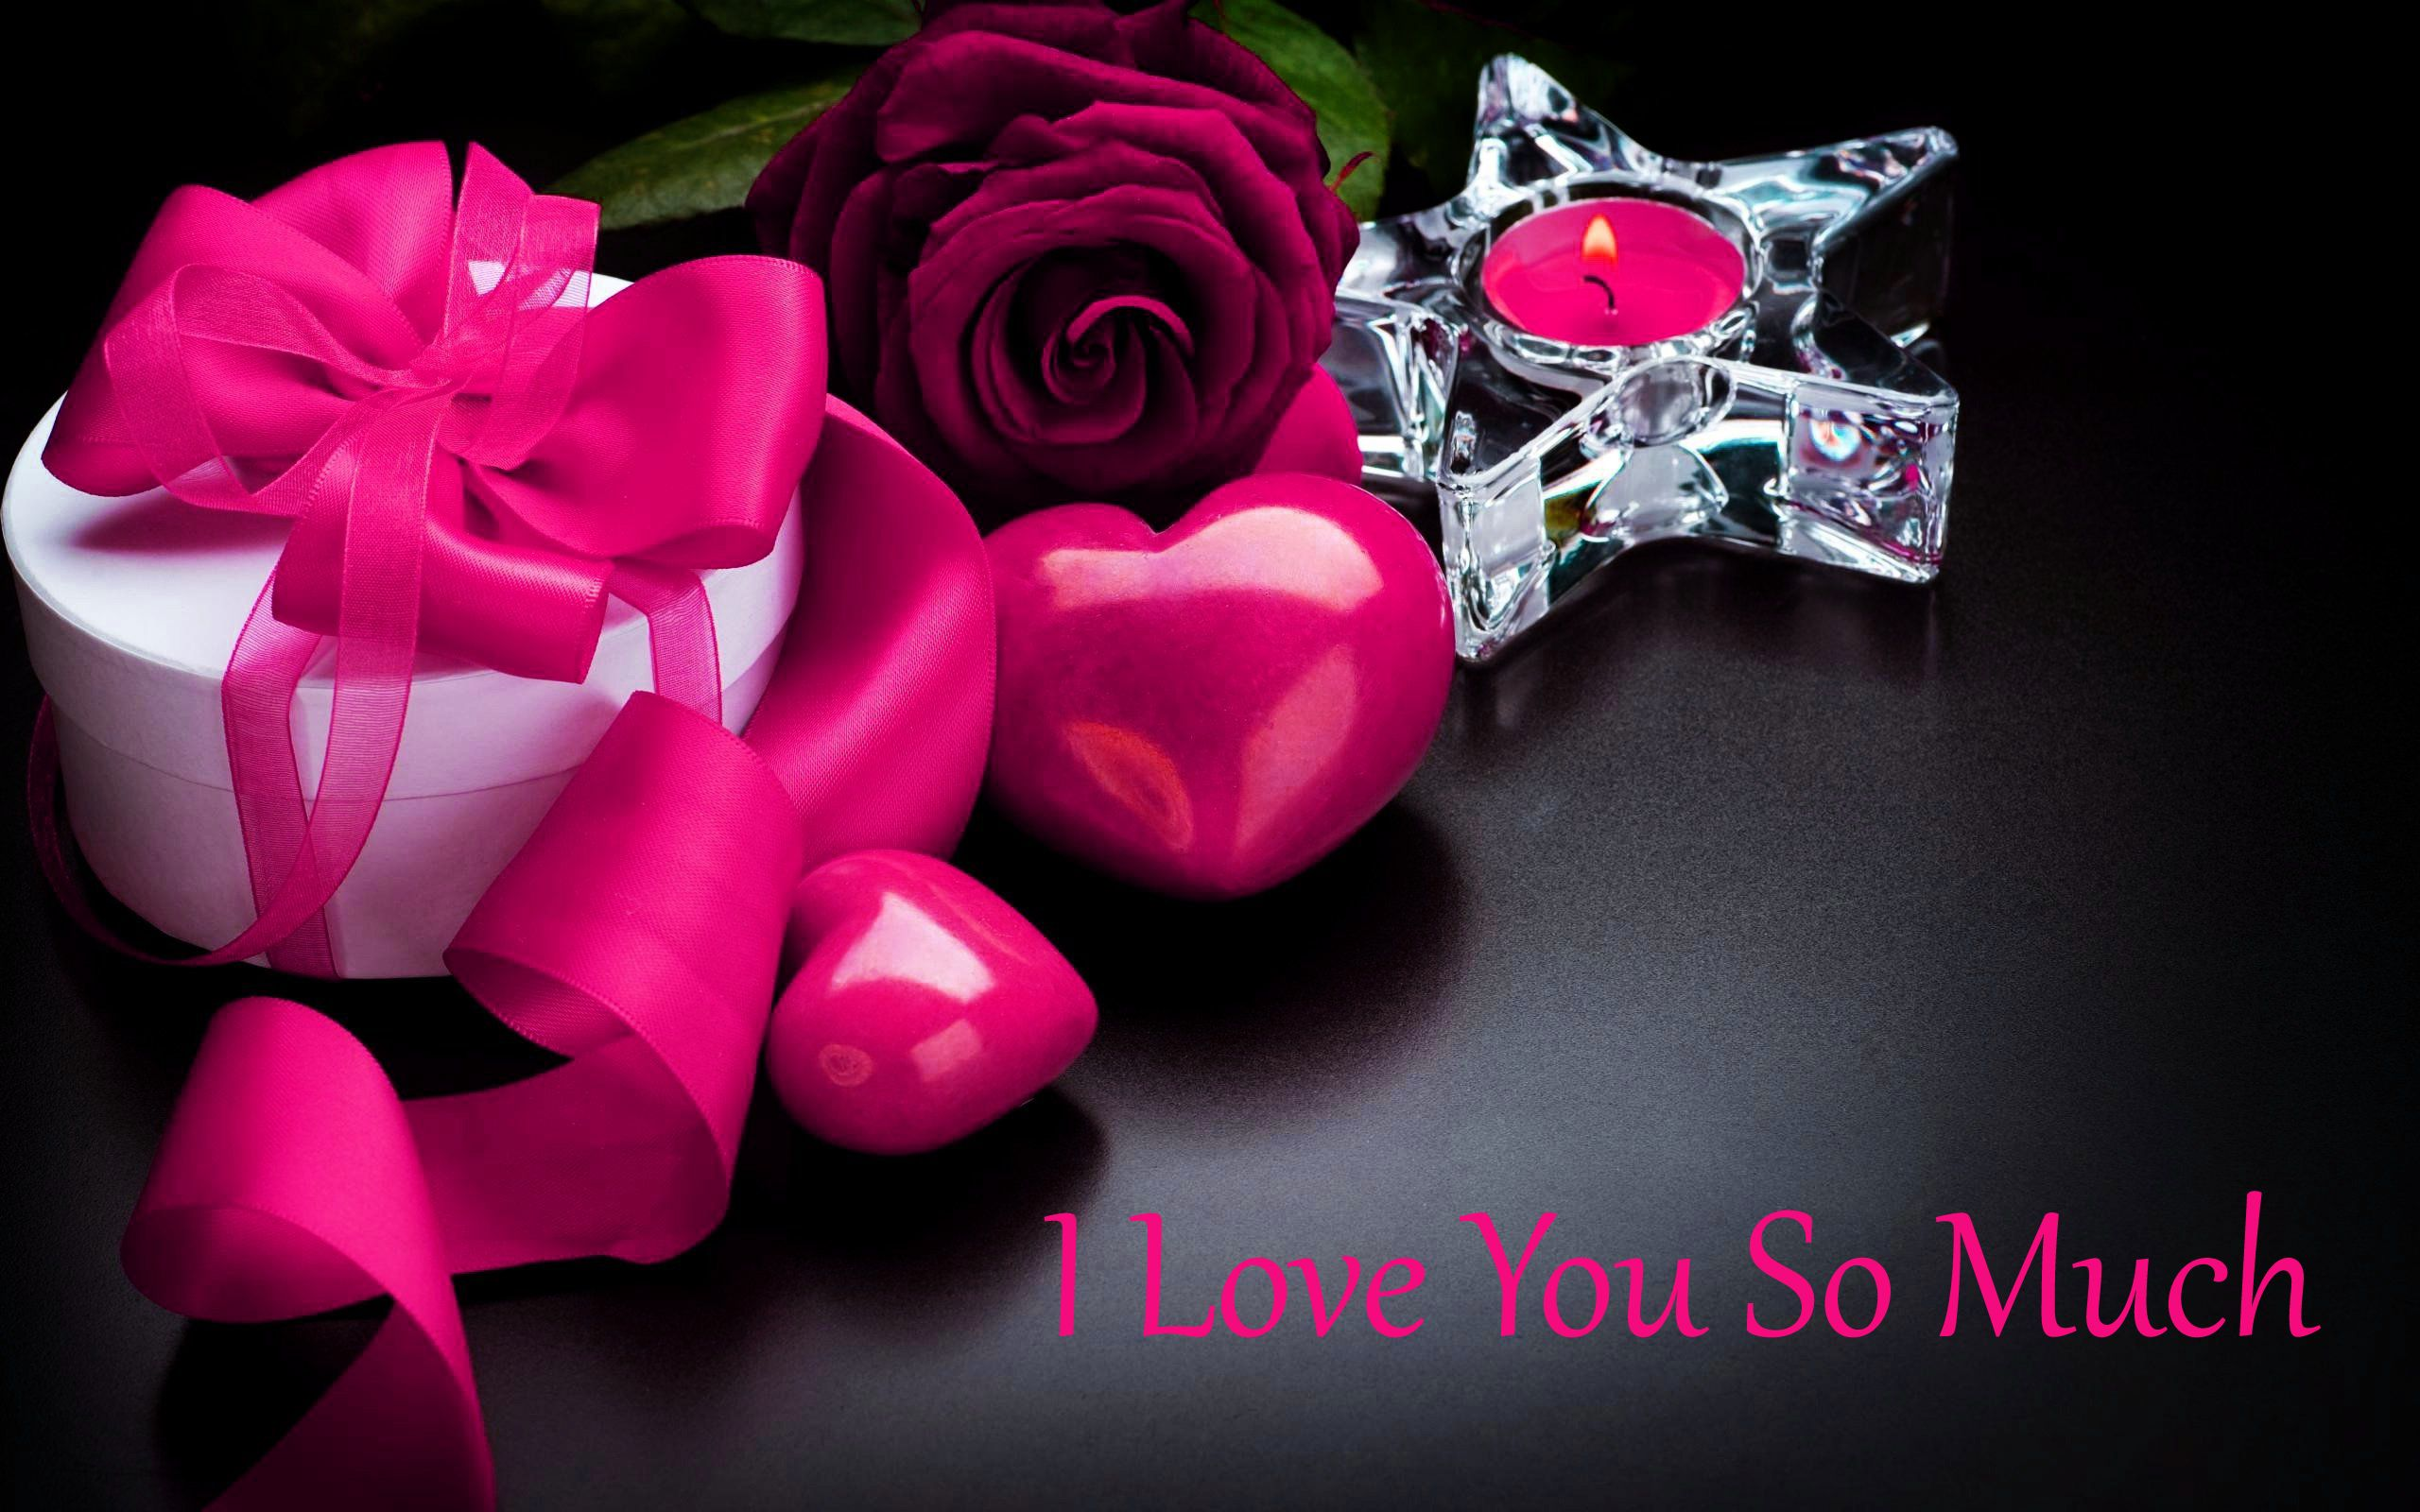 I Love You Wallpapers Free Download For Facebook